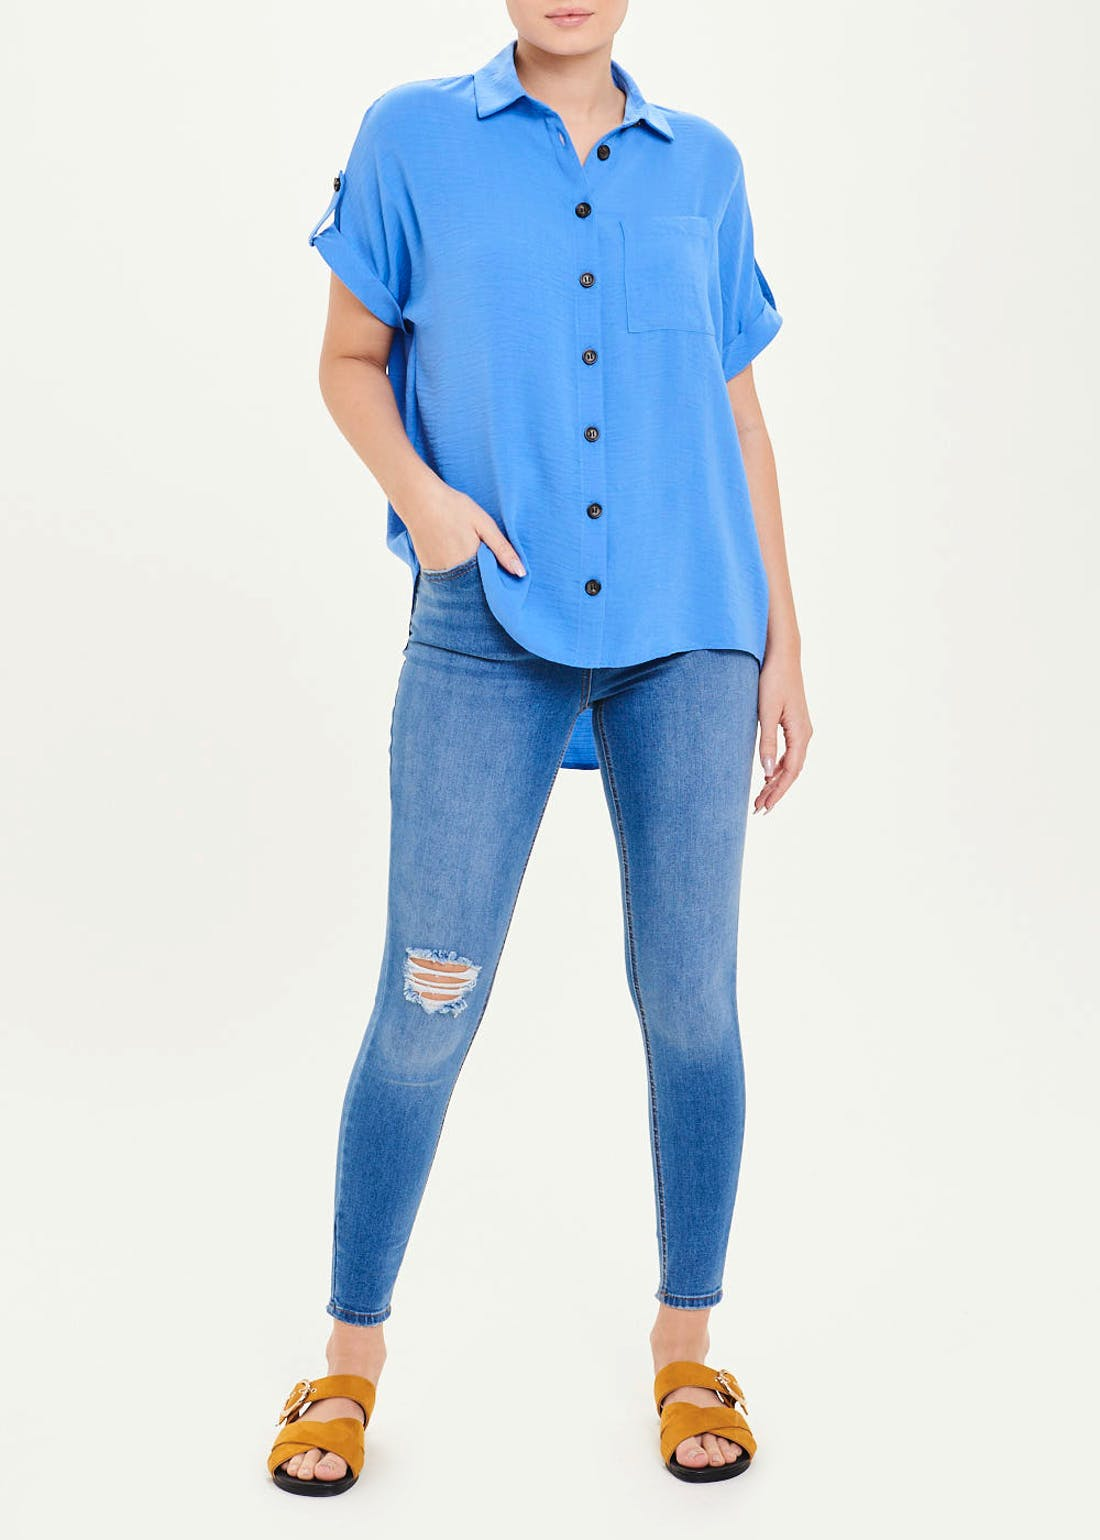 Blue Short Sleeve Button Shirt